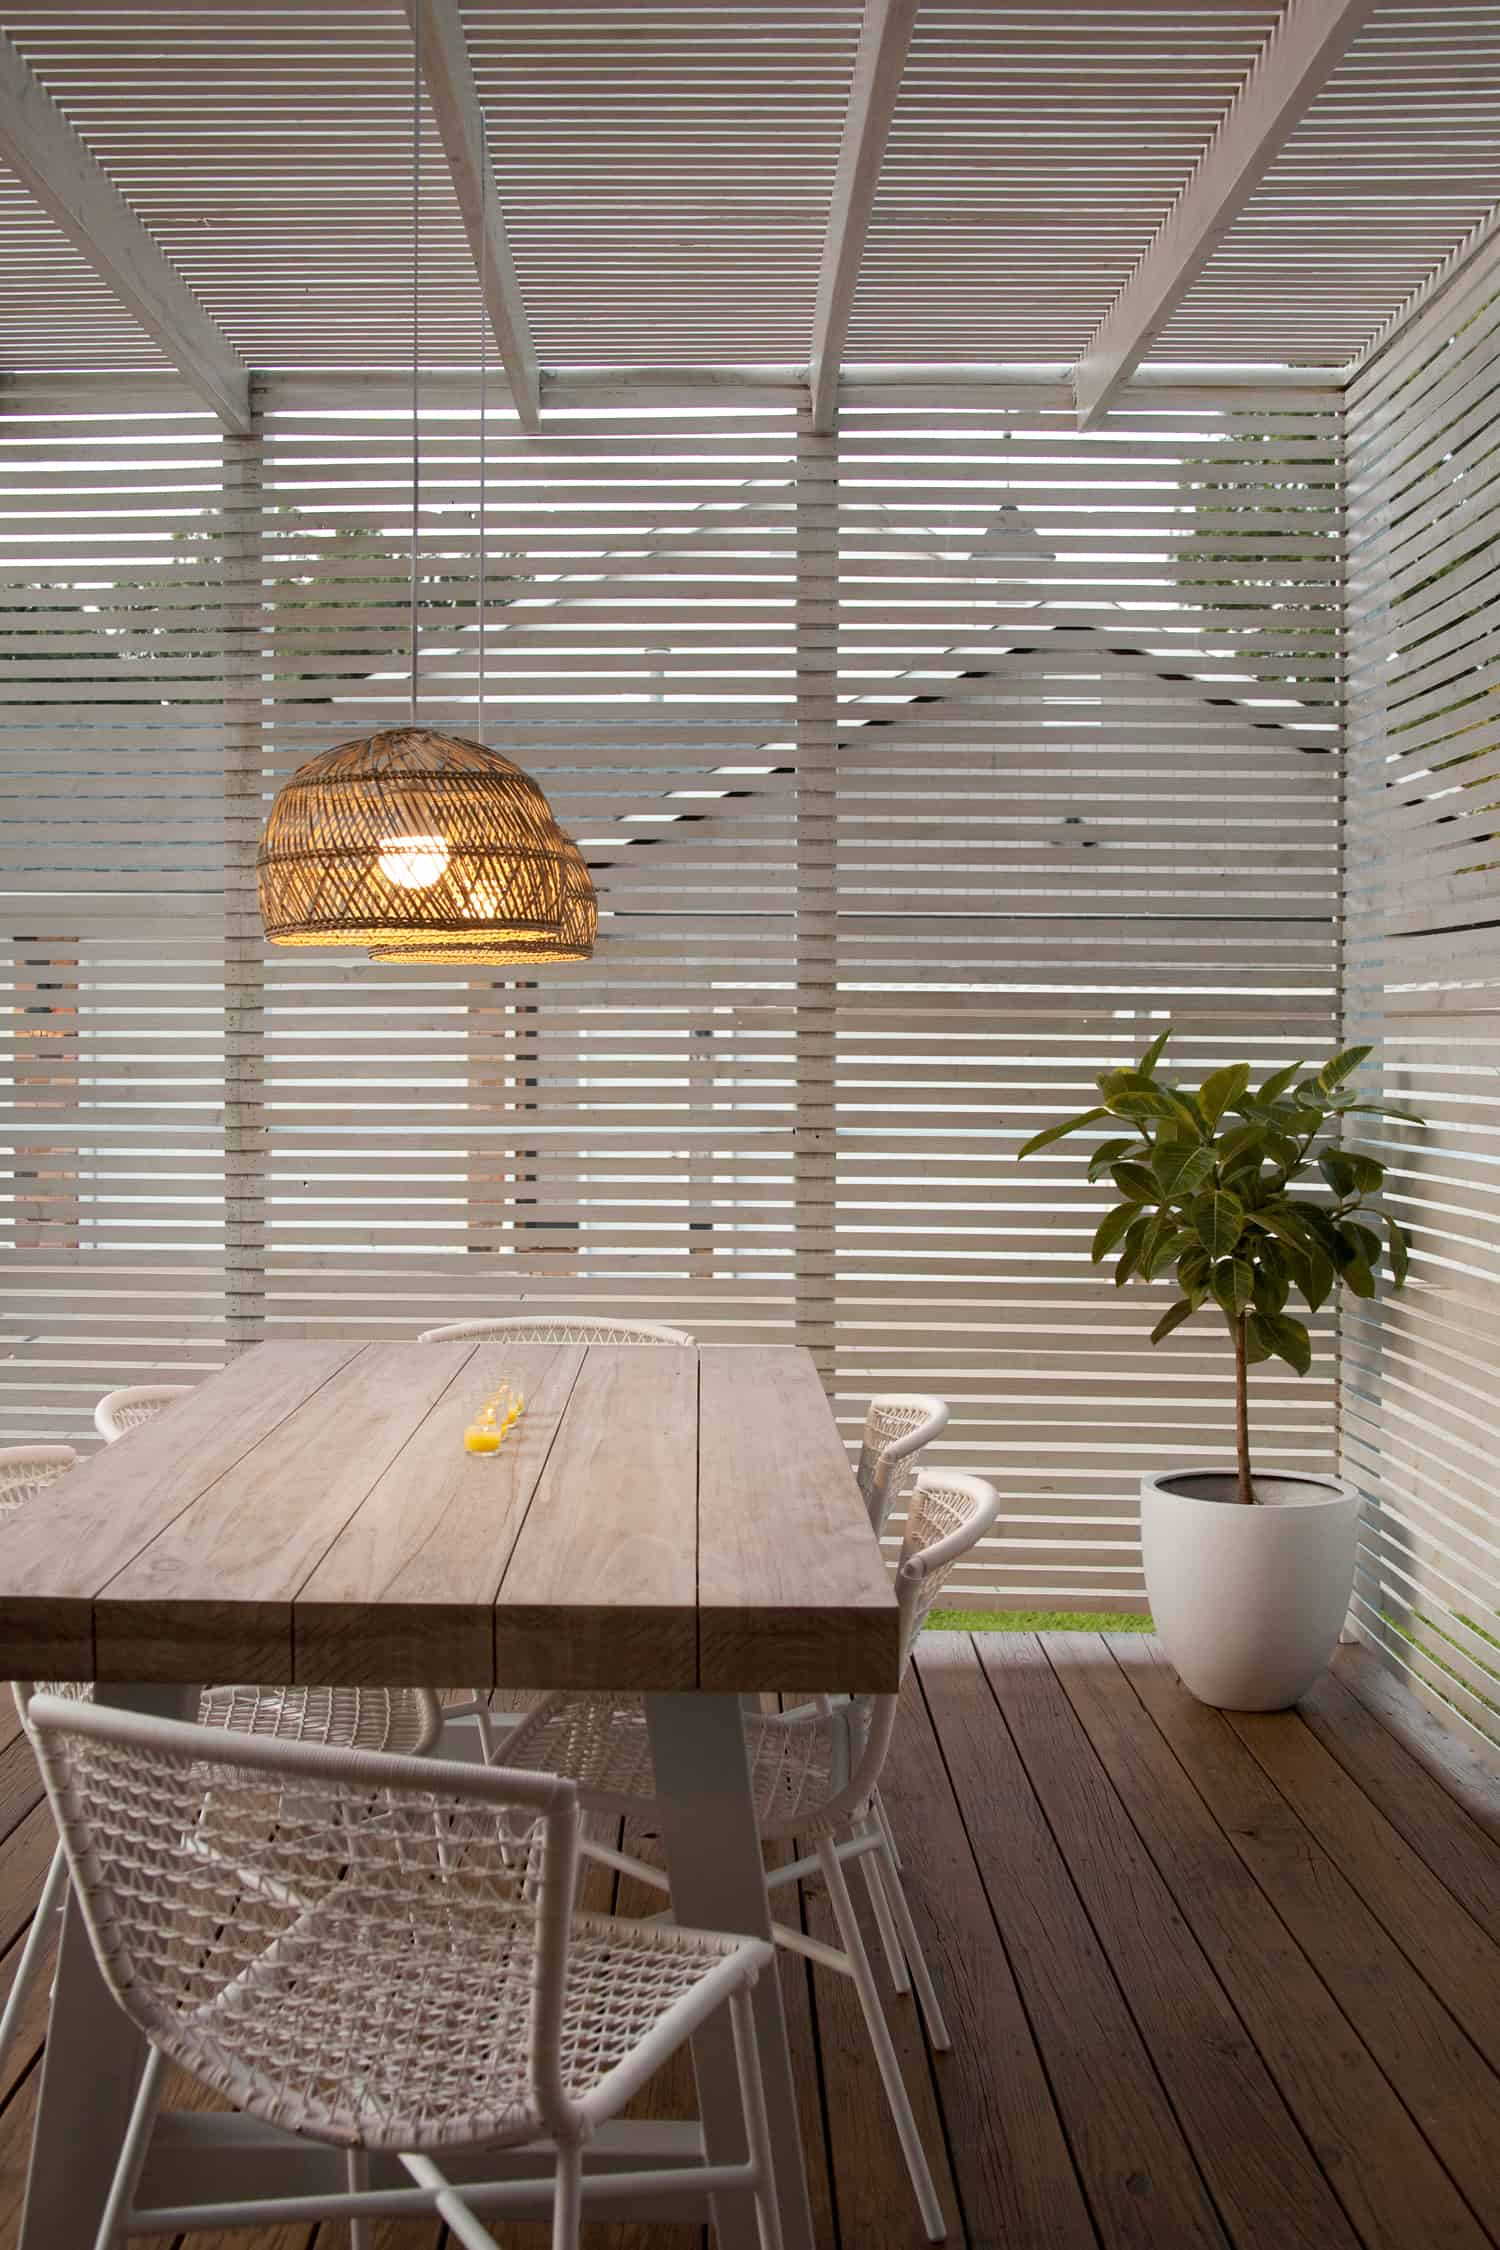 Converting a light for outdoor use